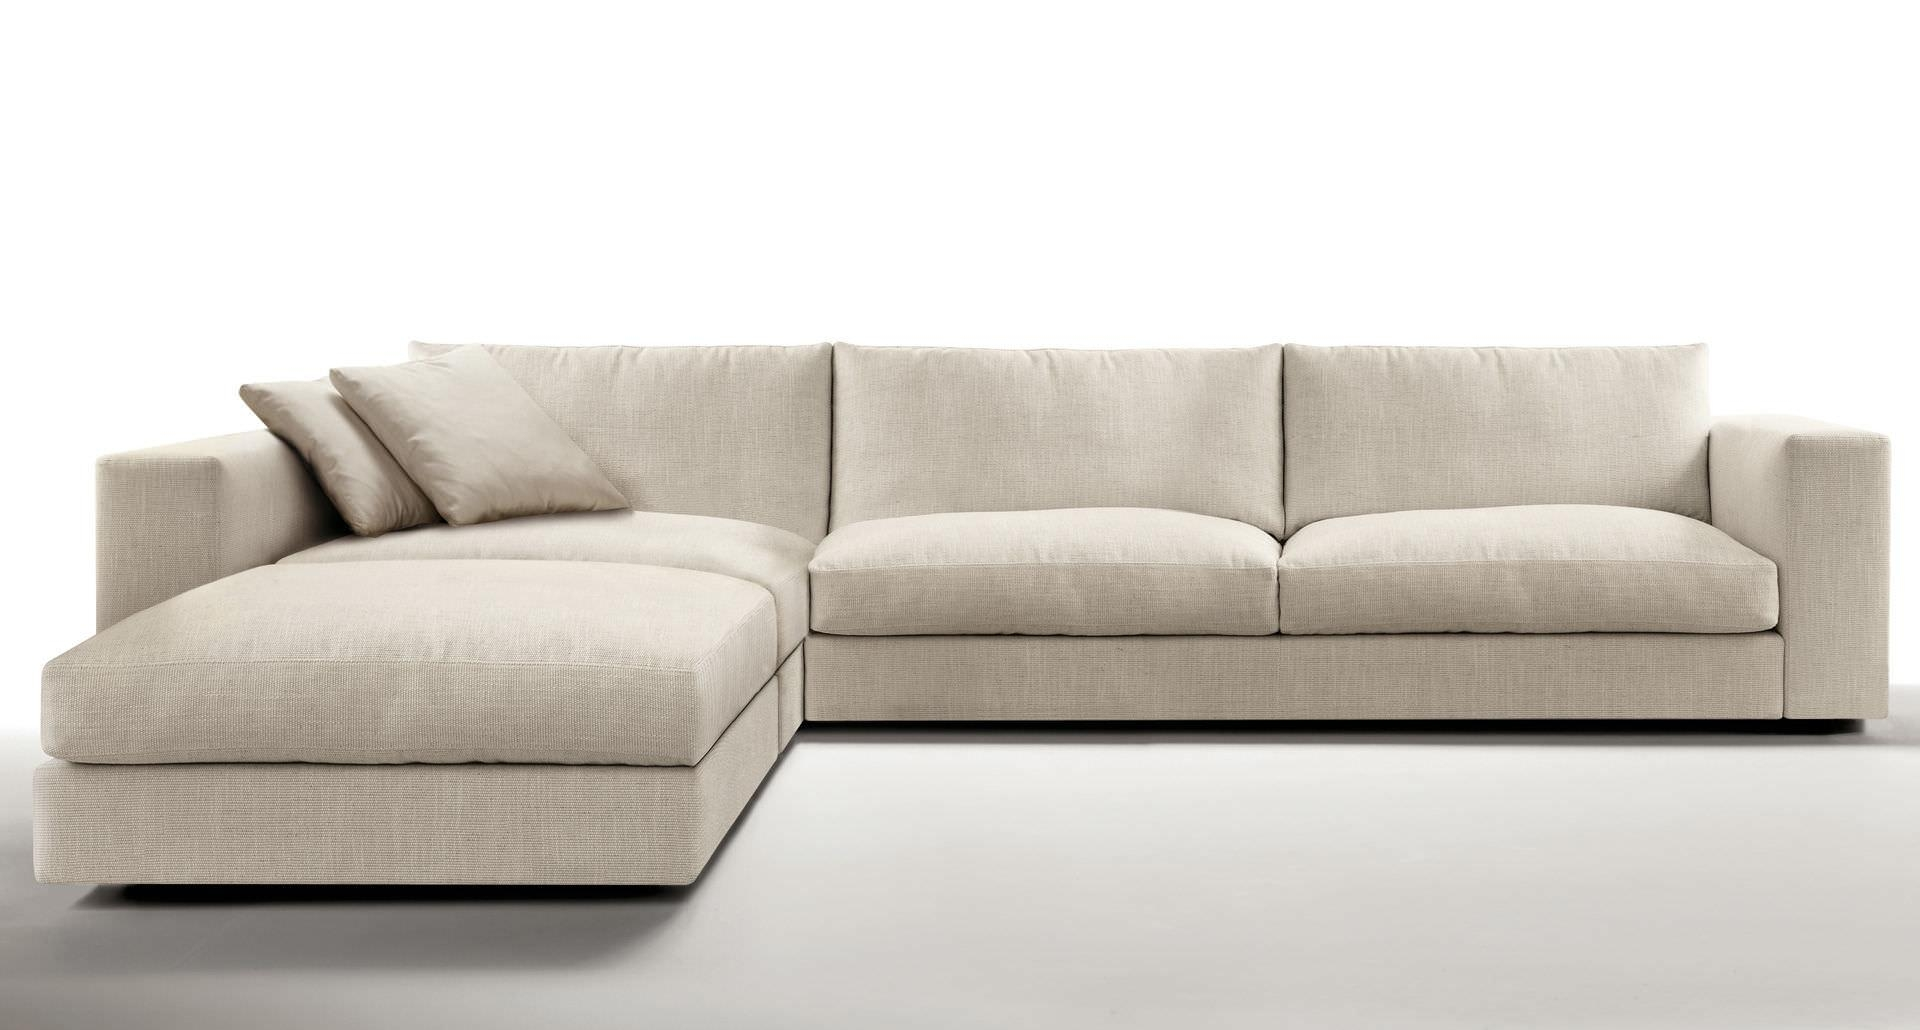 Corner Sofas For Sale Cheap | Tehranmix Decoration Pertaining To Cheap Corner Sofas (Image 7 of 20)